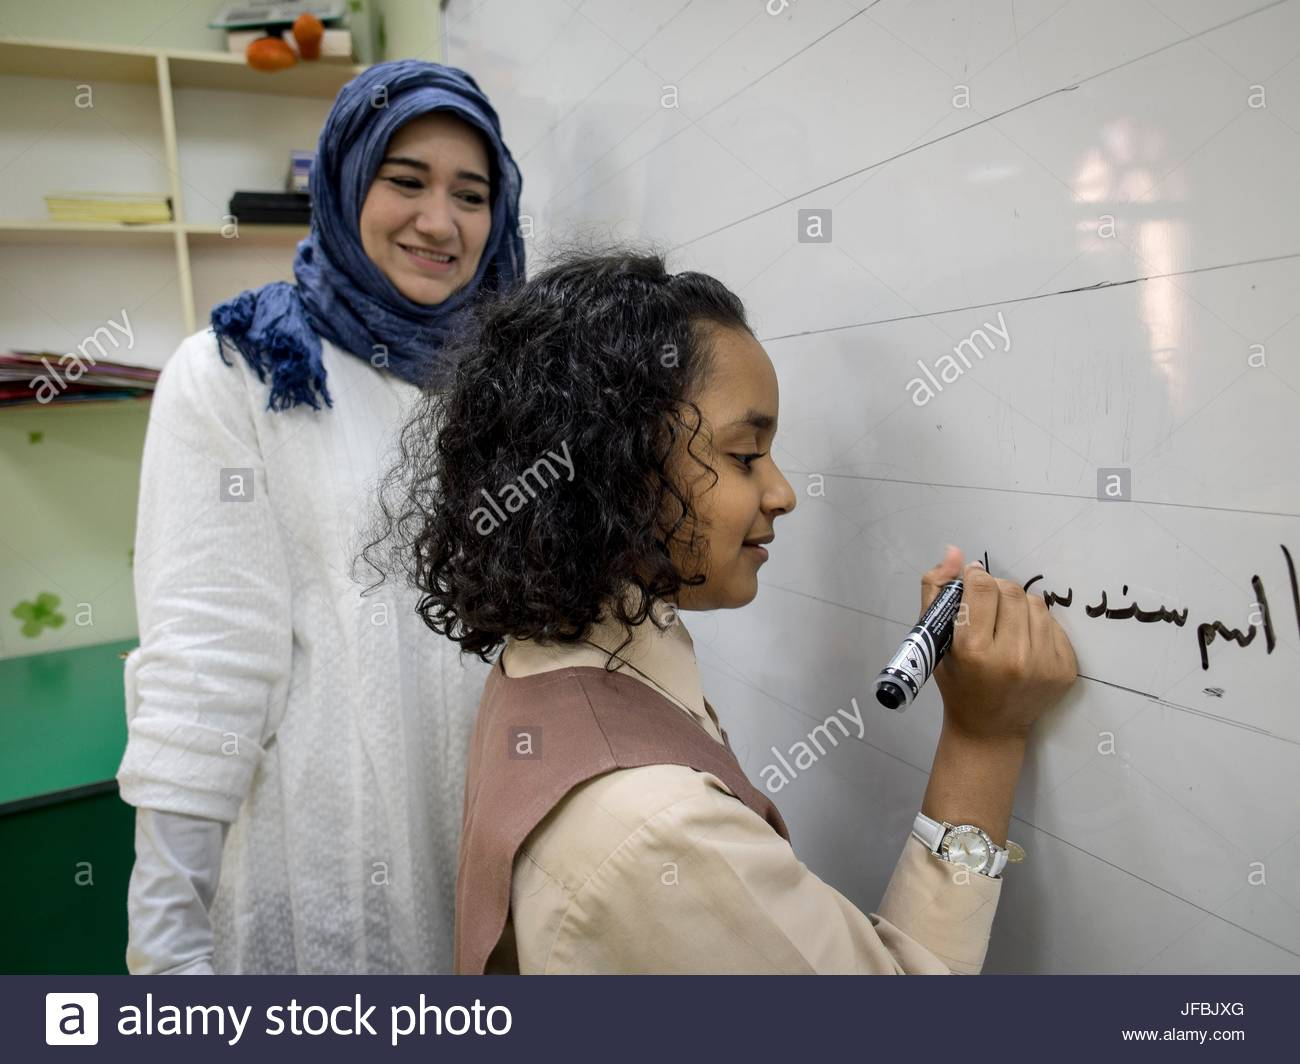 A teacher watches a 10 year old girl writing on a board. - Stock Image